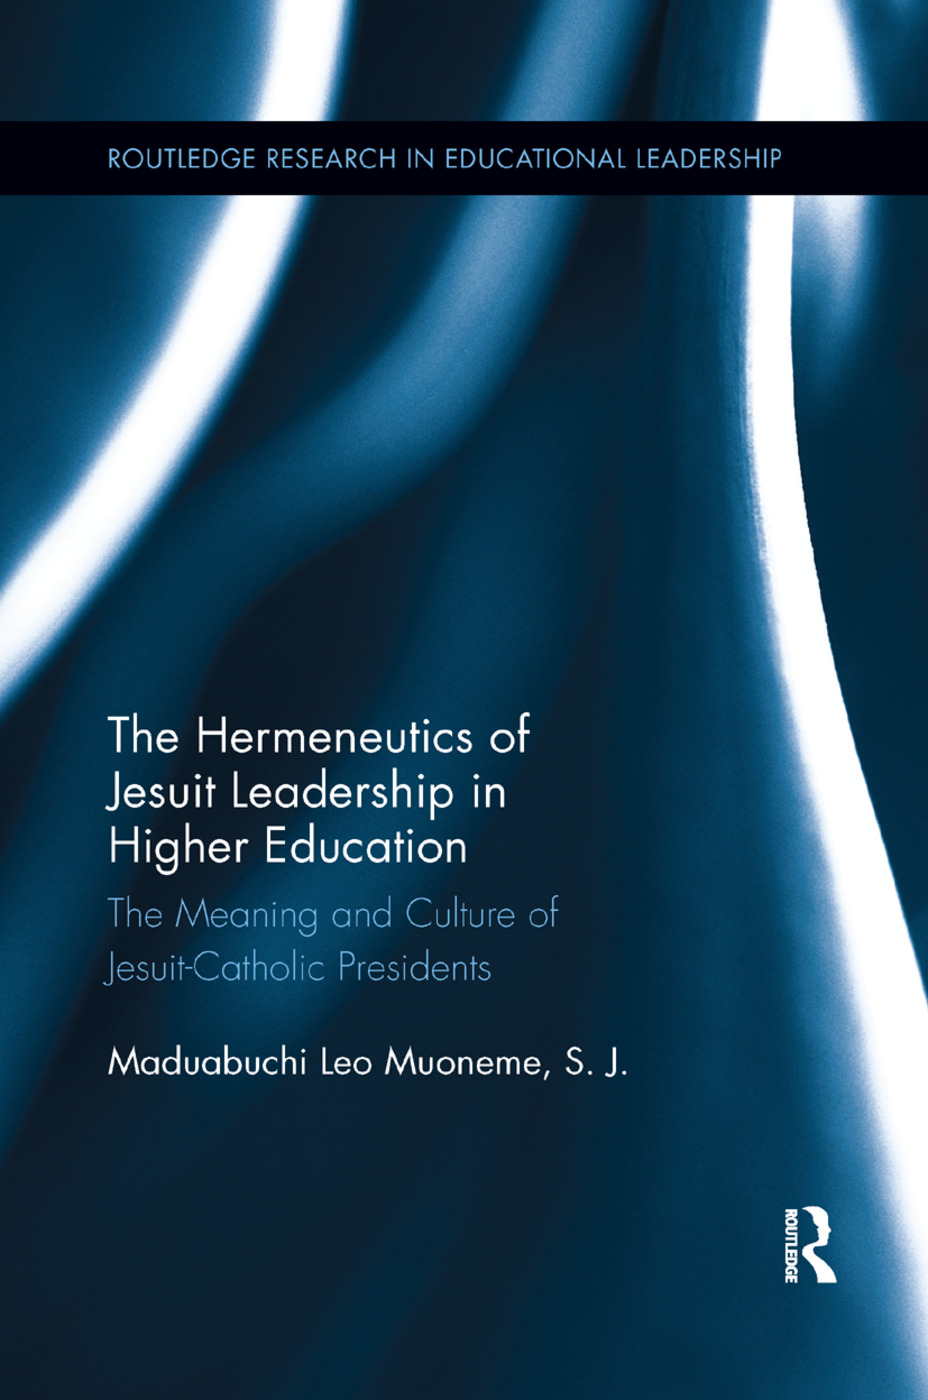 The Hermeneutics of Jesuit Leadership in Higher Education: The Meaning and Culture of Catholic-Jesuit Presidents book cover